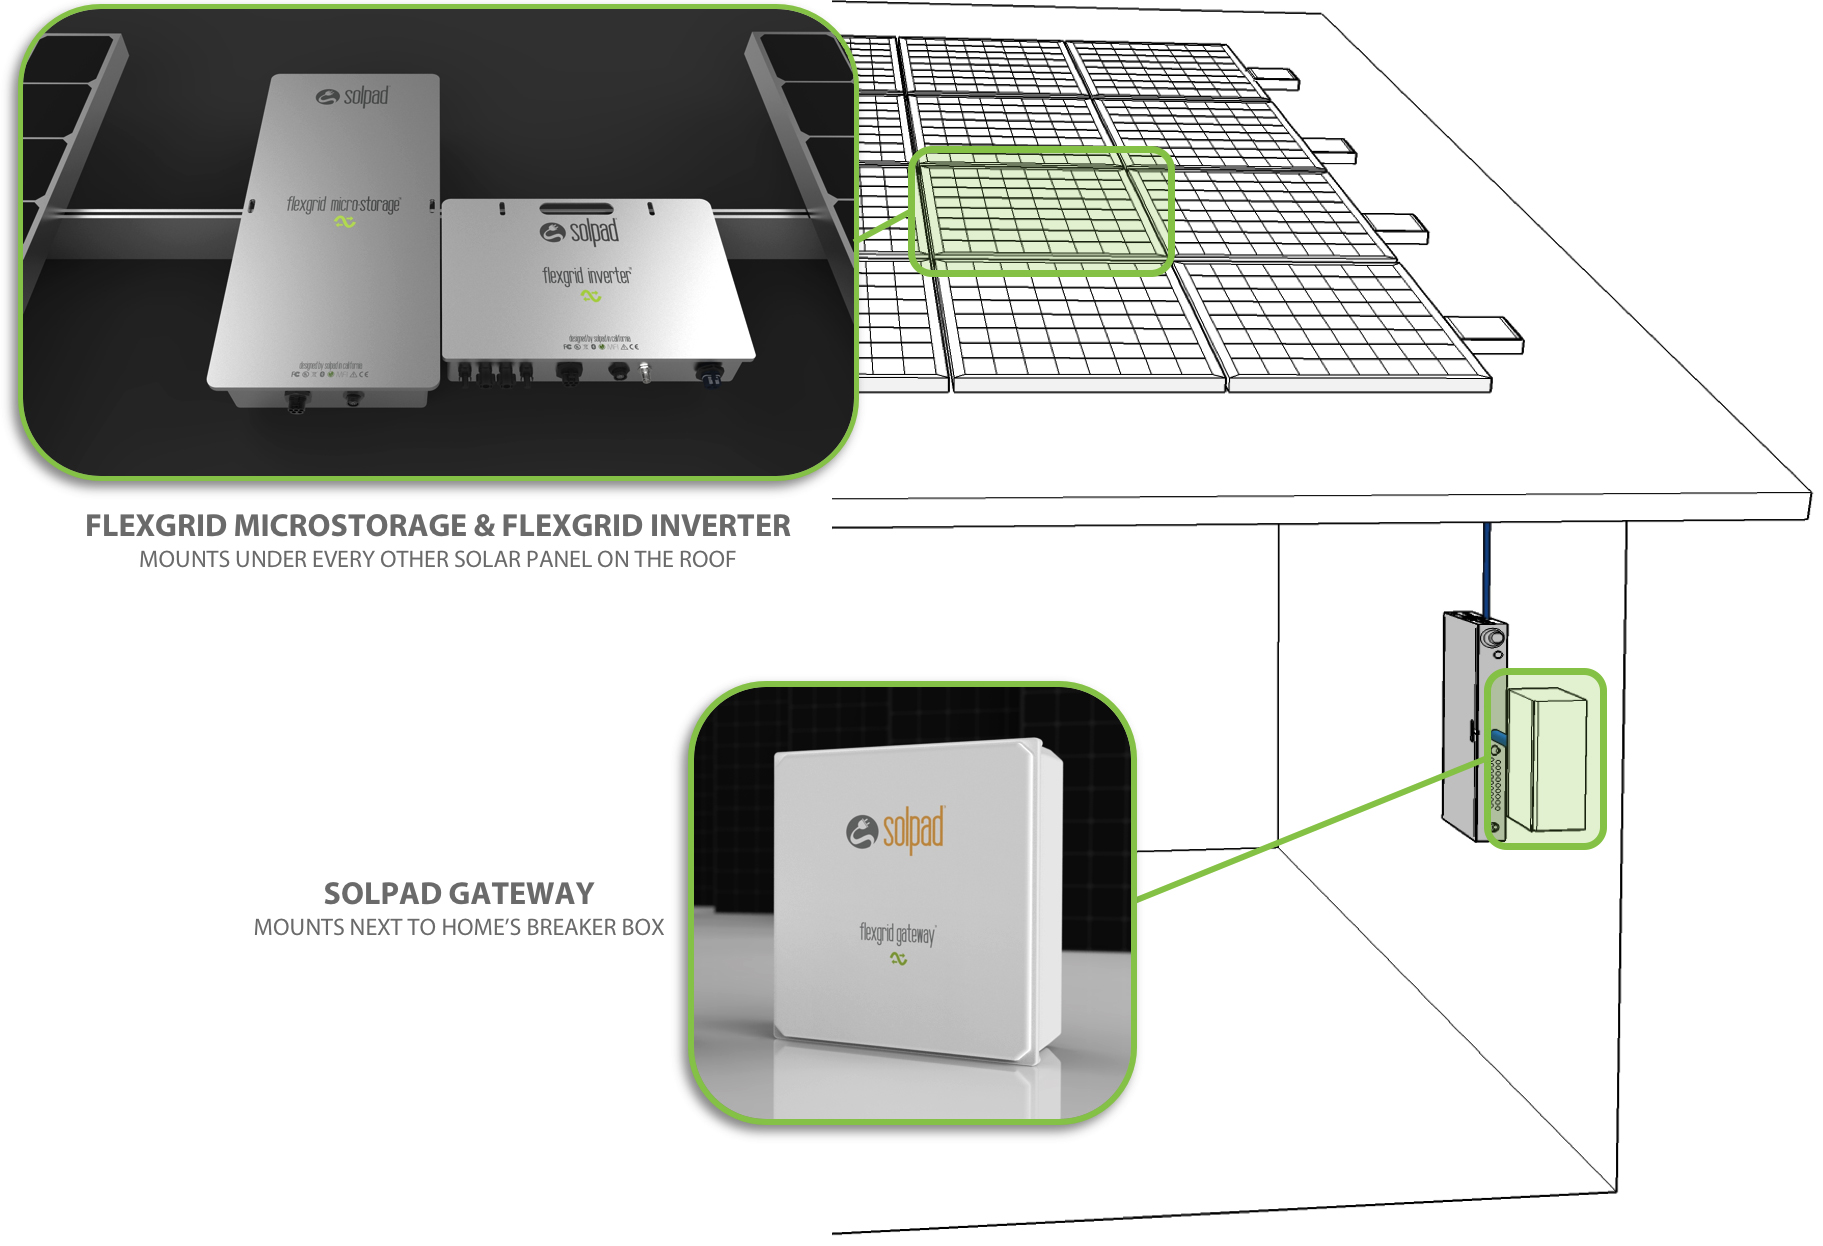 Solpad The Future Of Solar Storage Is Here Home Panel Wiring Diagram How To Power Your Battery And Inverter Modules Mount Safely On Roof Beneath Anywhere From 2 4 Panels Depending Amount You Need